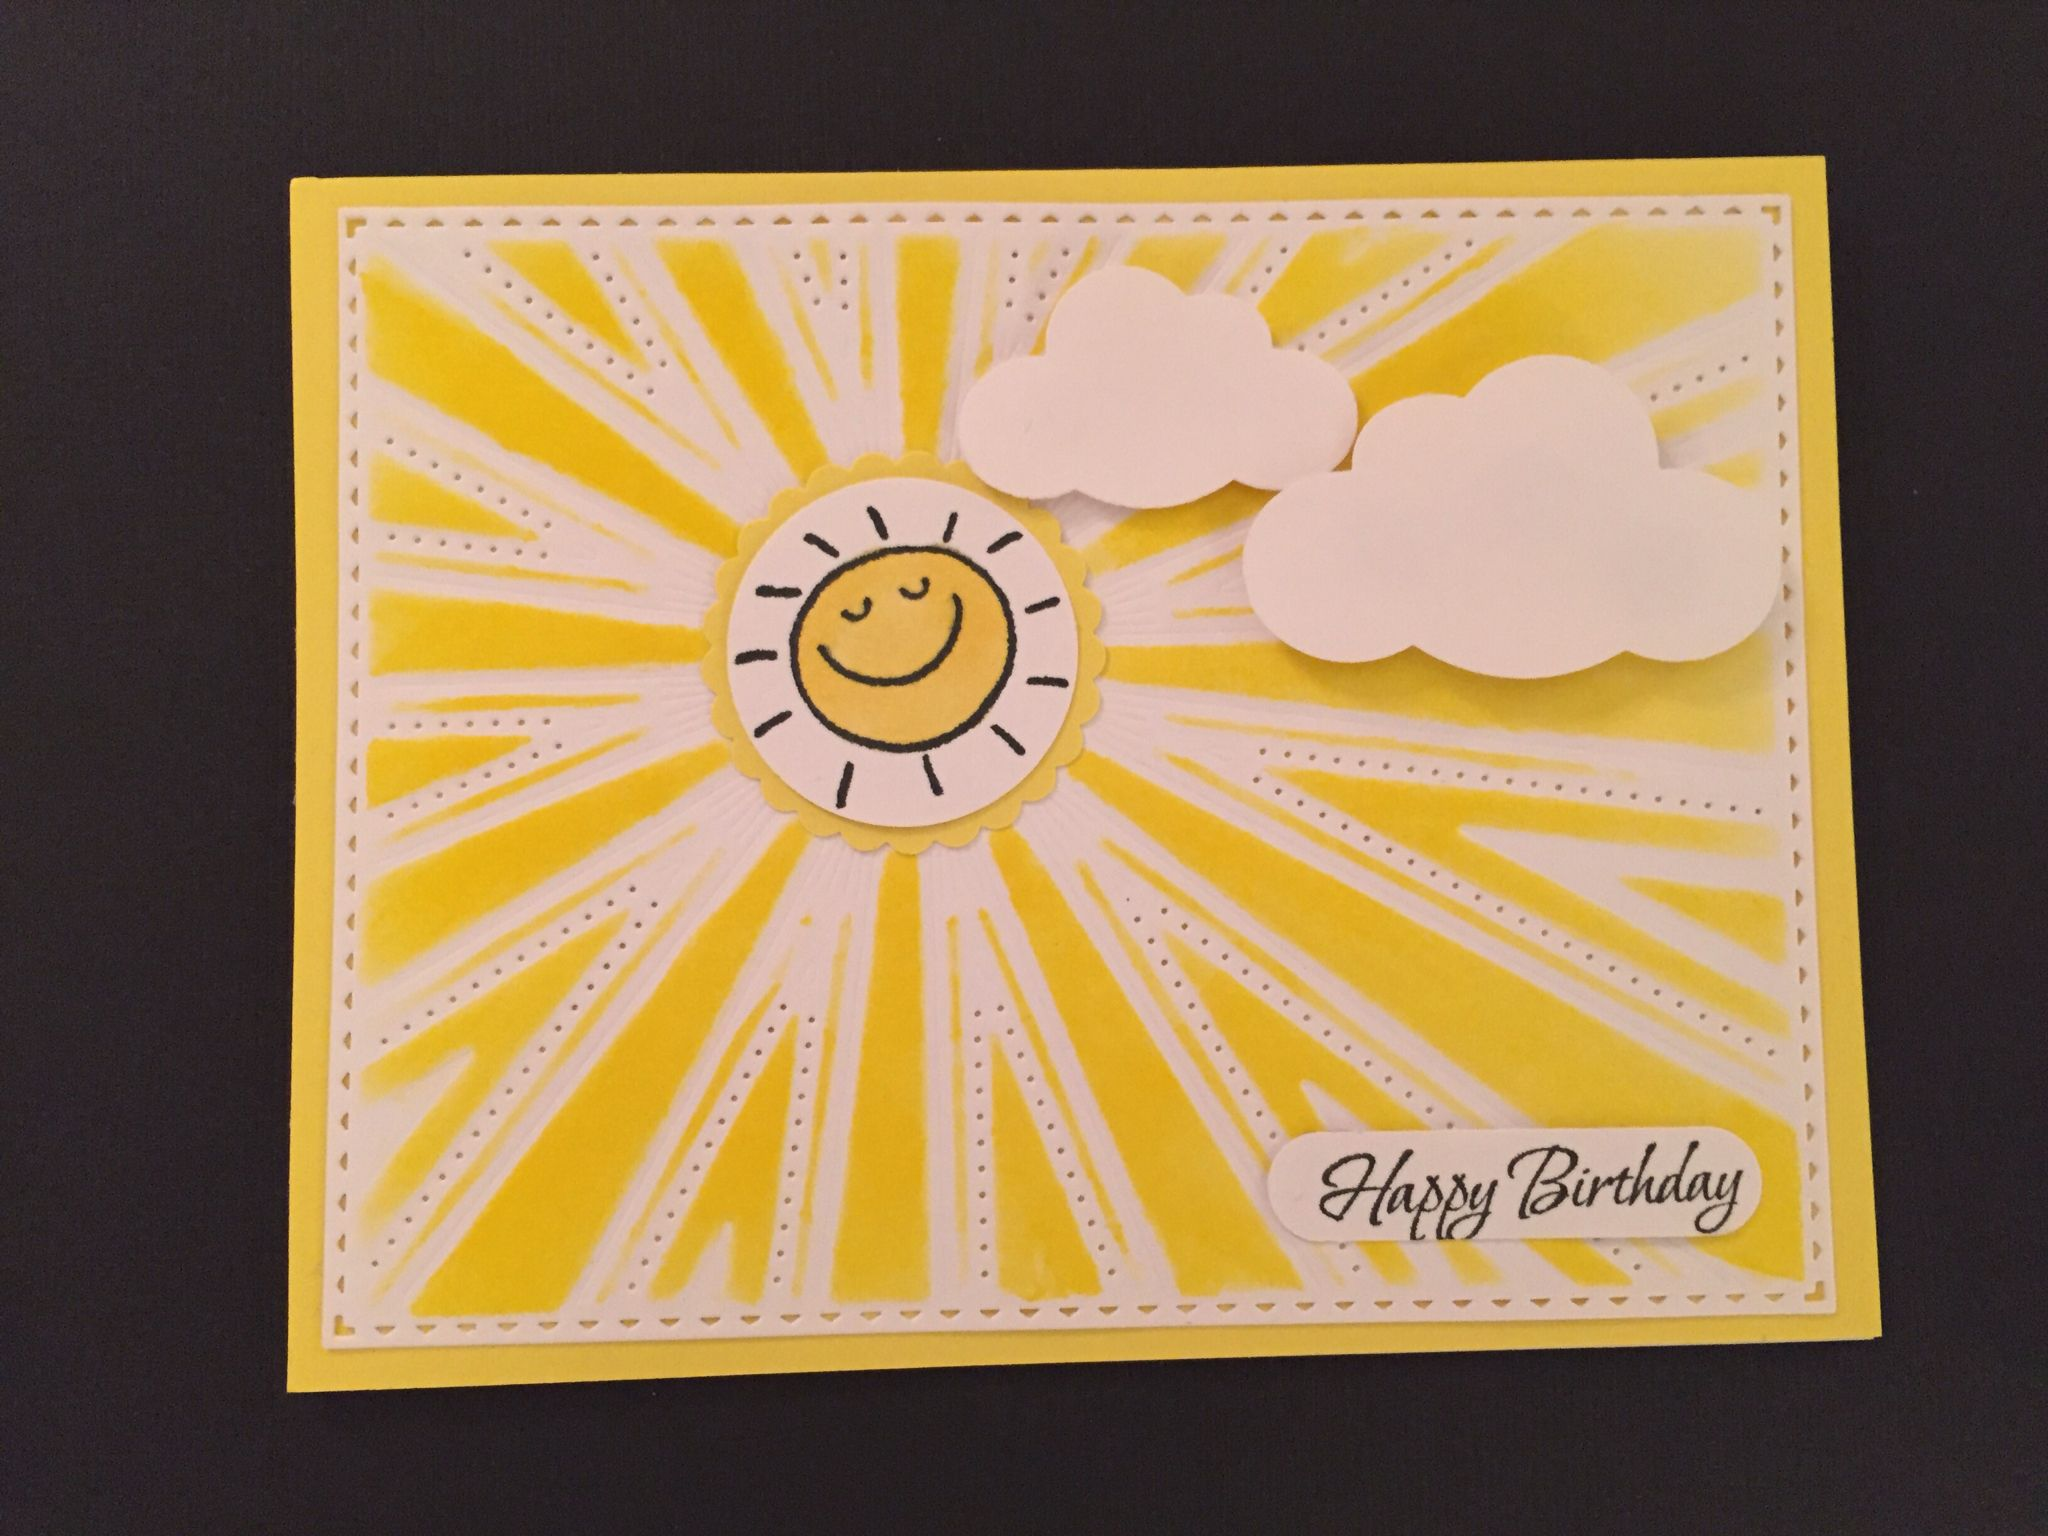 Sunburst Background Die And Embossing Template From Our Daily Bread Designs Cloud Punches From Fiskars And Sunny Face Stamp Fro Sunburst Cards Cards Sunburst